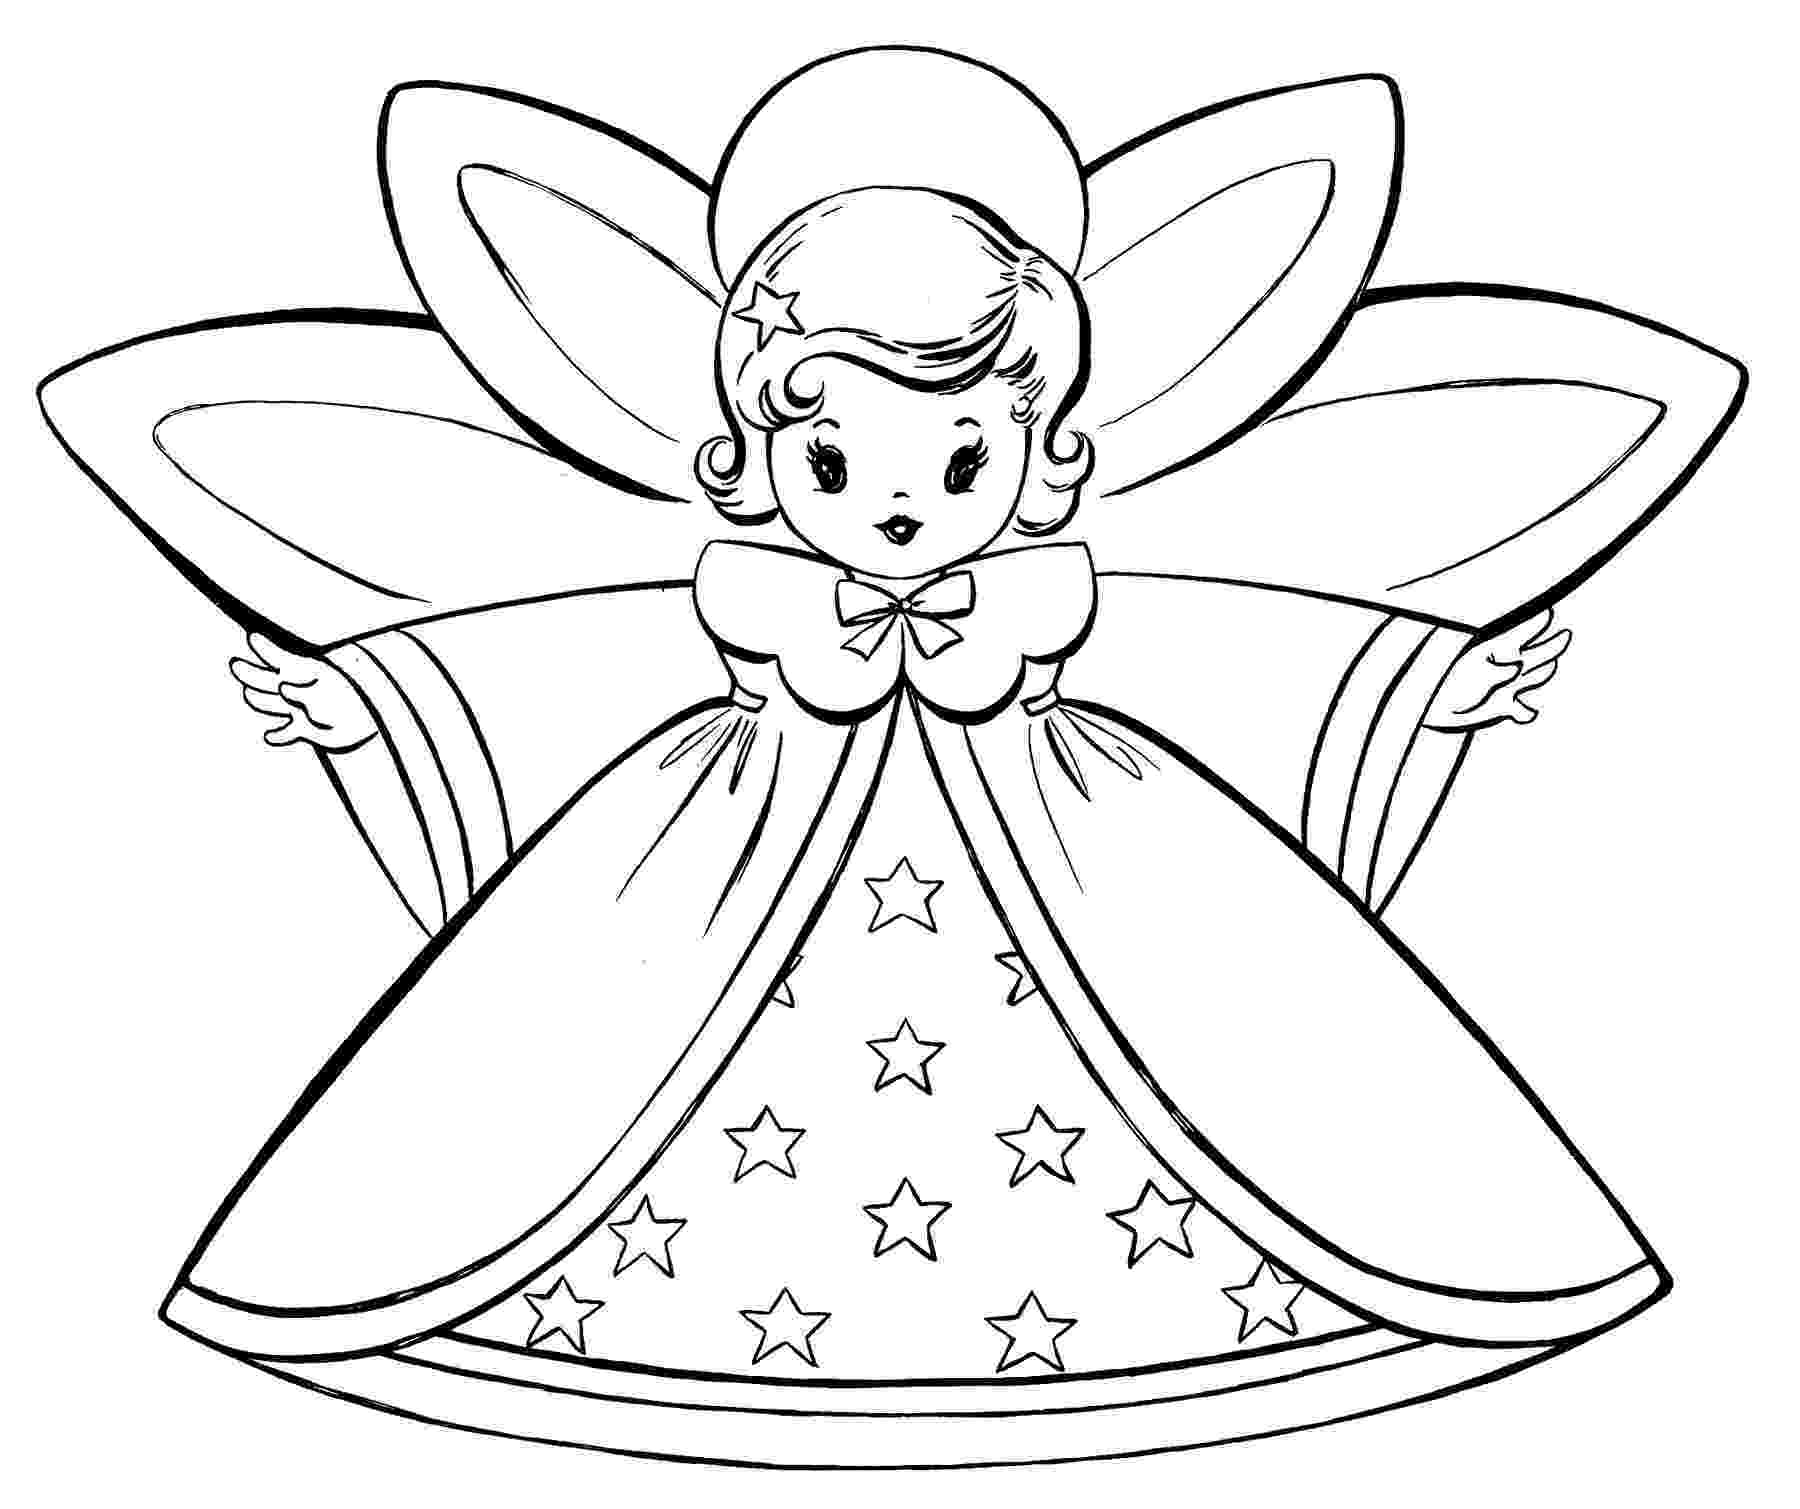 christmas images to color christmas colouring pages for kids christmas colouring in christmas images to color